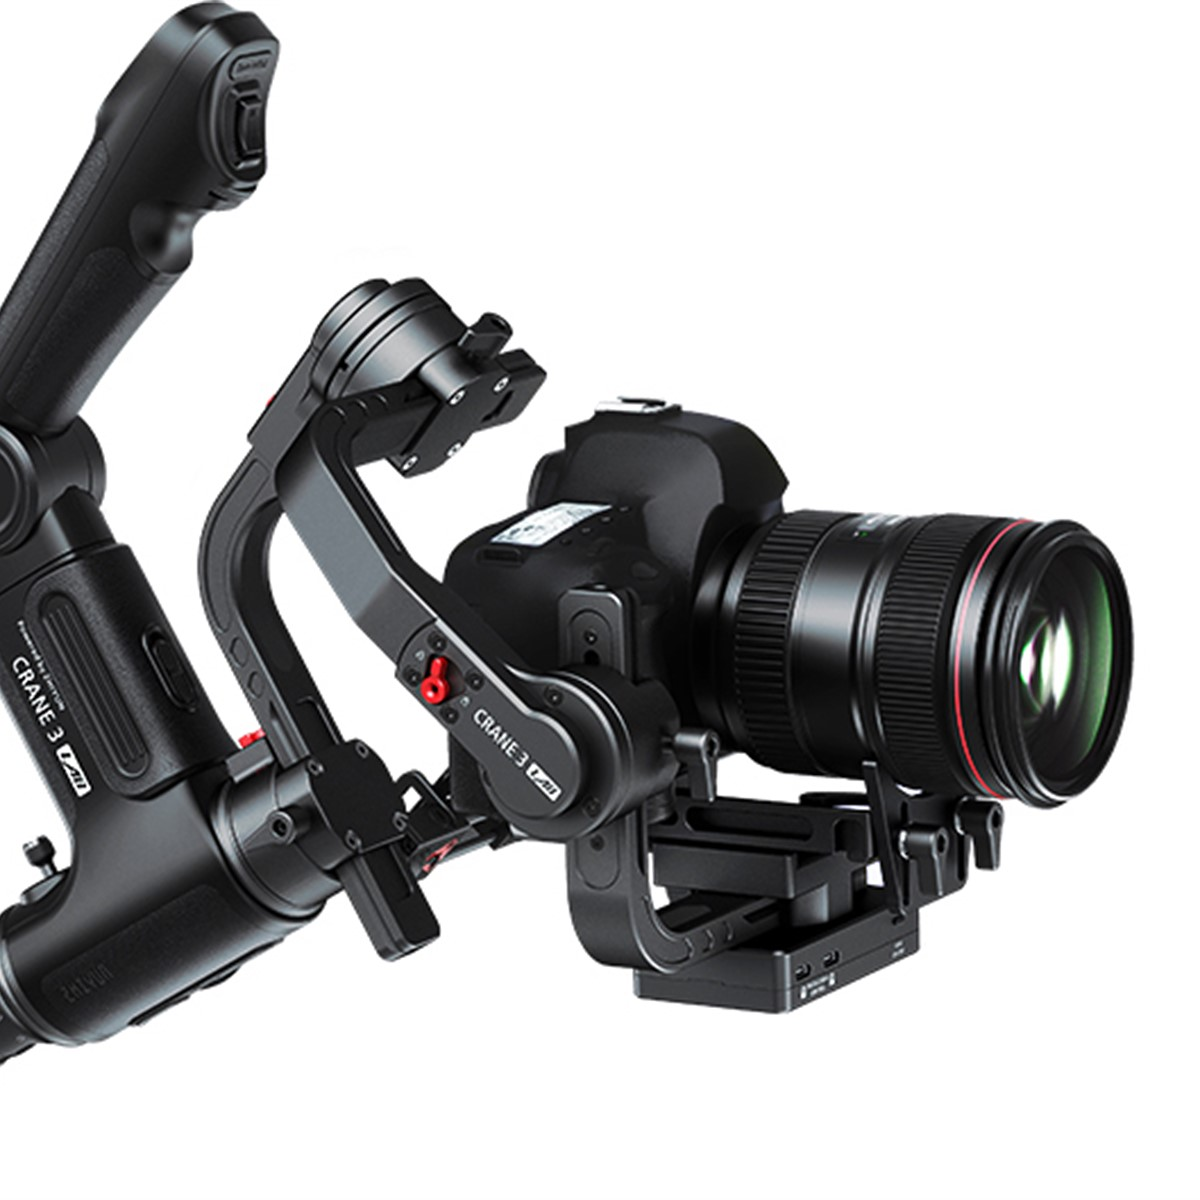 Zhiyun-Tech adds zoom, smartphone control on its new Crane 3